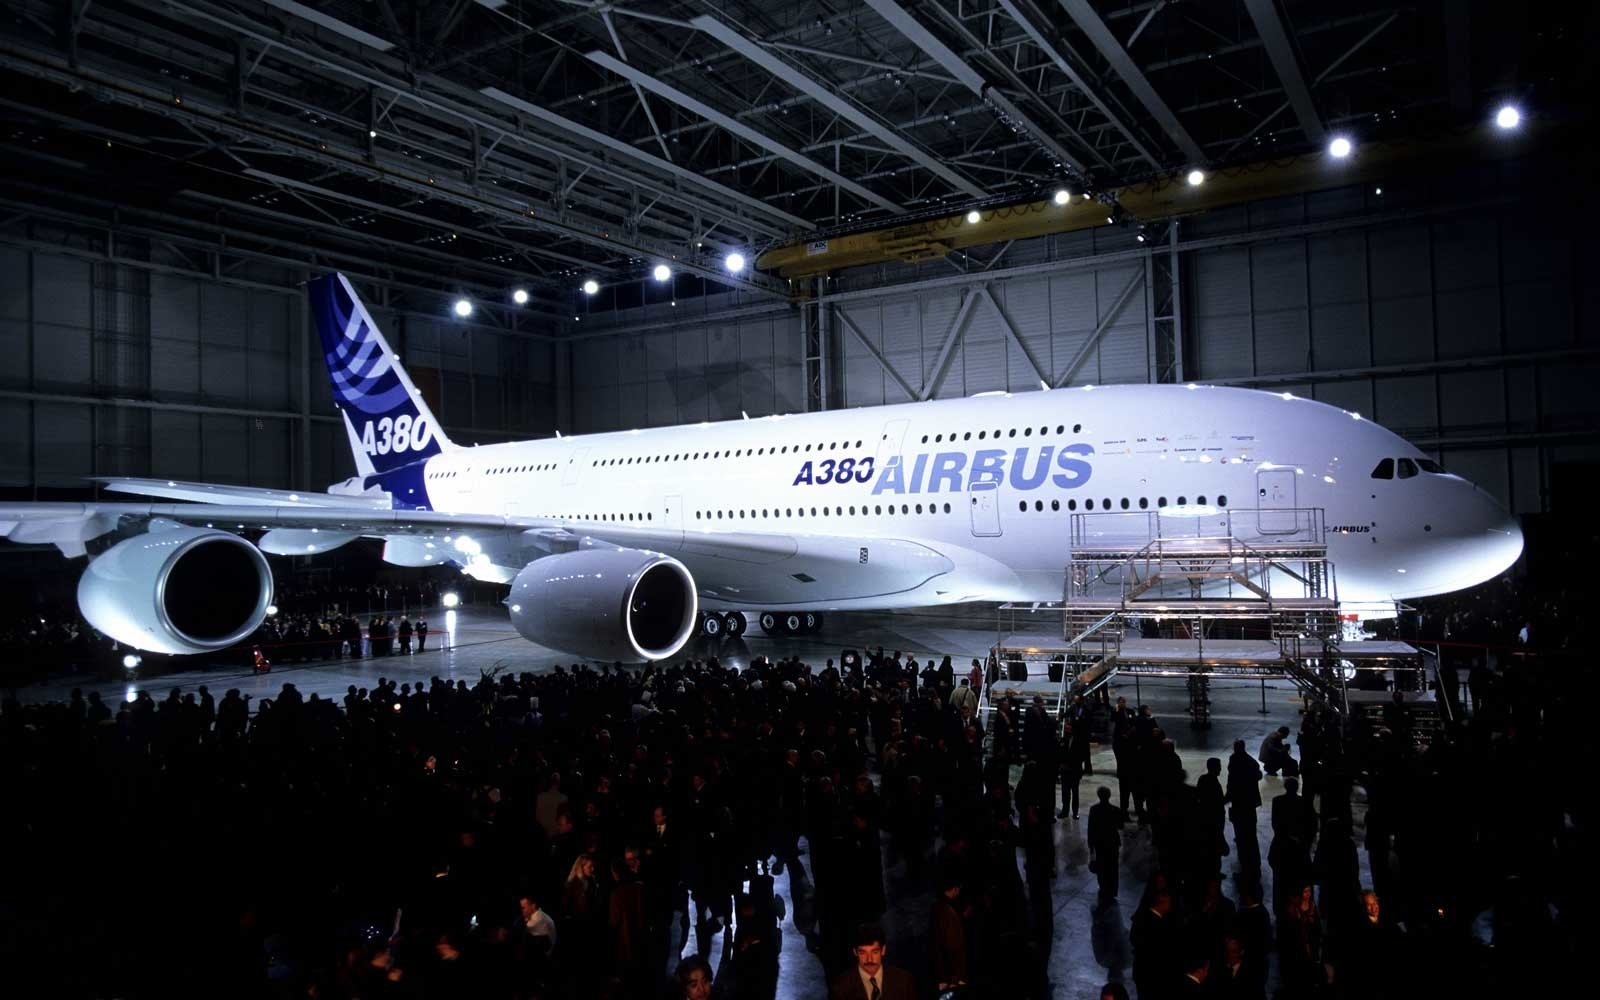 Airbus Will Stop Producing Its Famous Double Decker Plane in 2021